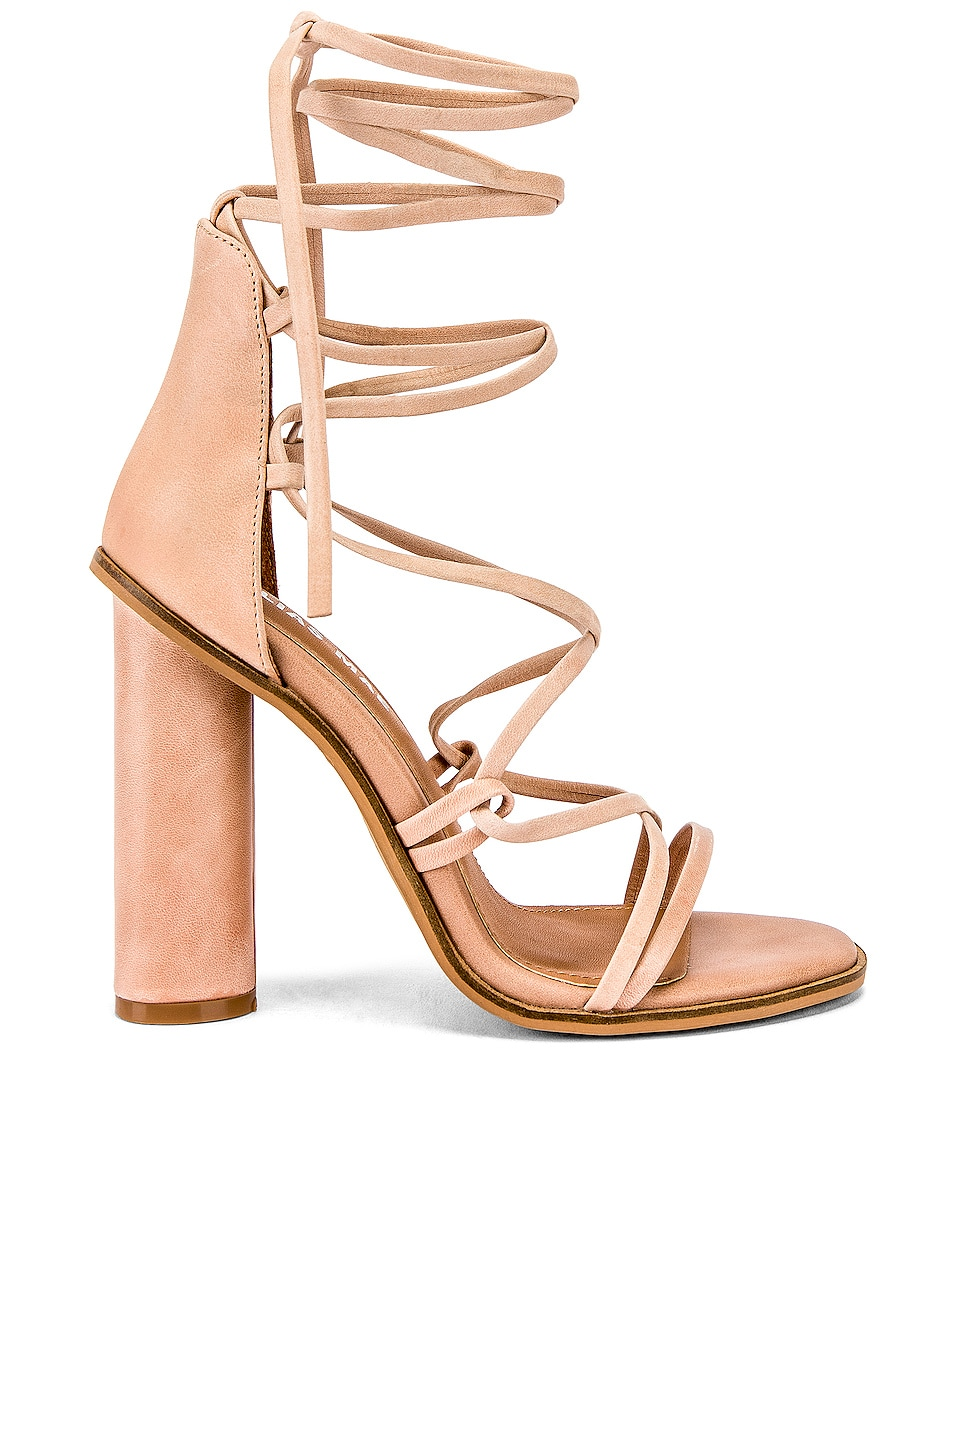 Alias Mae Amiyah Heel in Blush